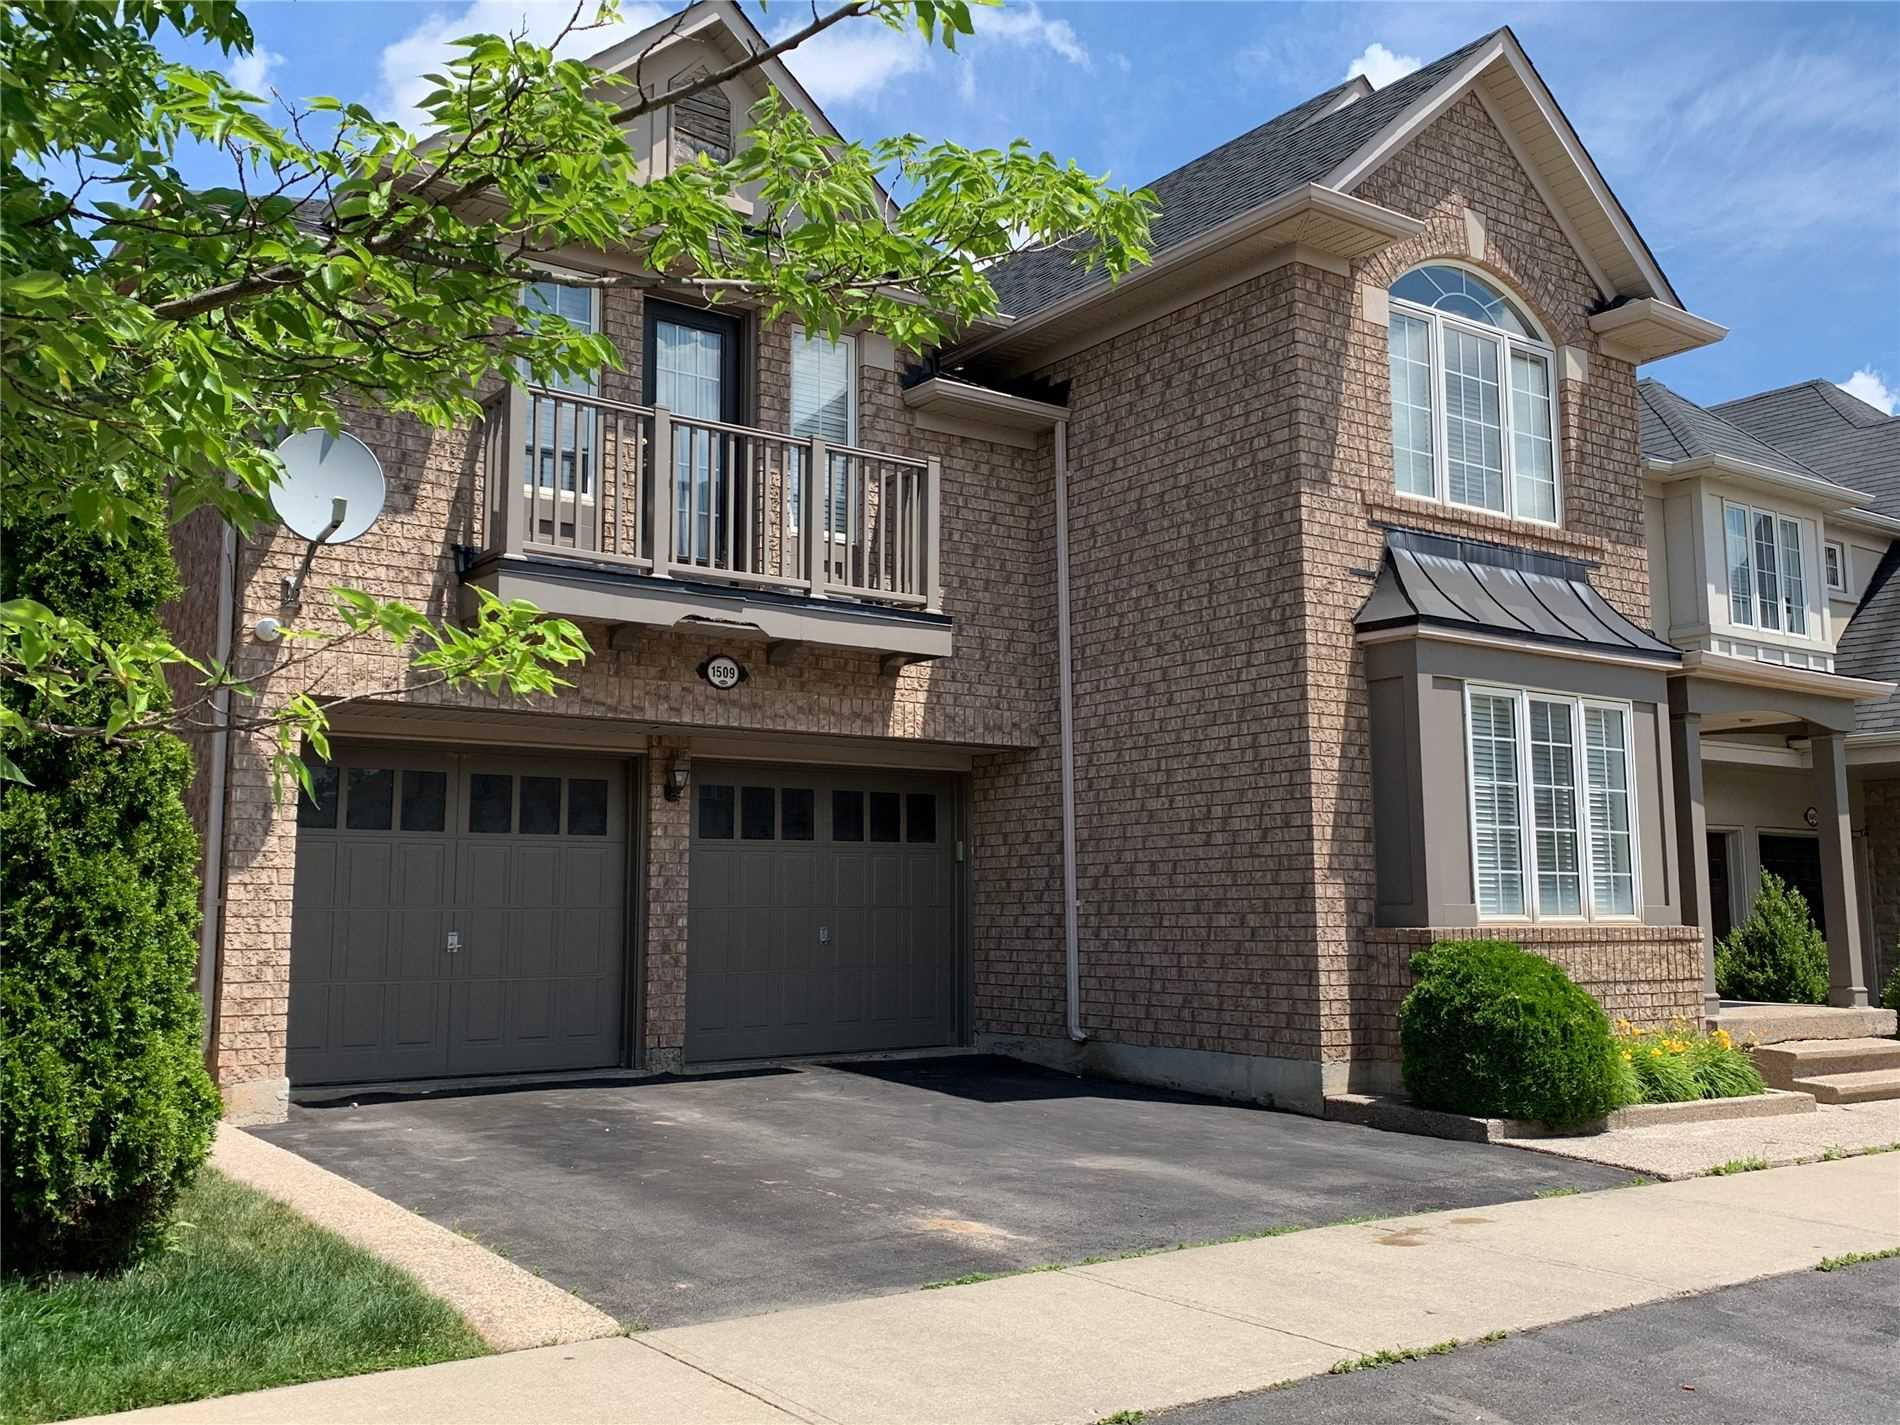 1509 Marshall Cres, Milton, L9T6T8, 4 Bedrooms Bedrooms, ,5 BathroomsBathrooms,Detached,For Sale,Marshall,W4809281